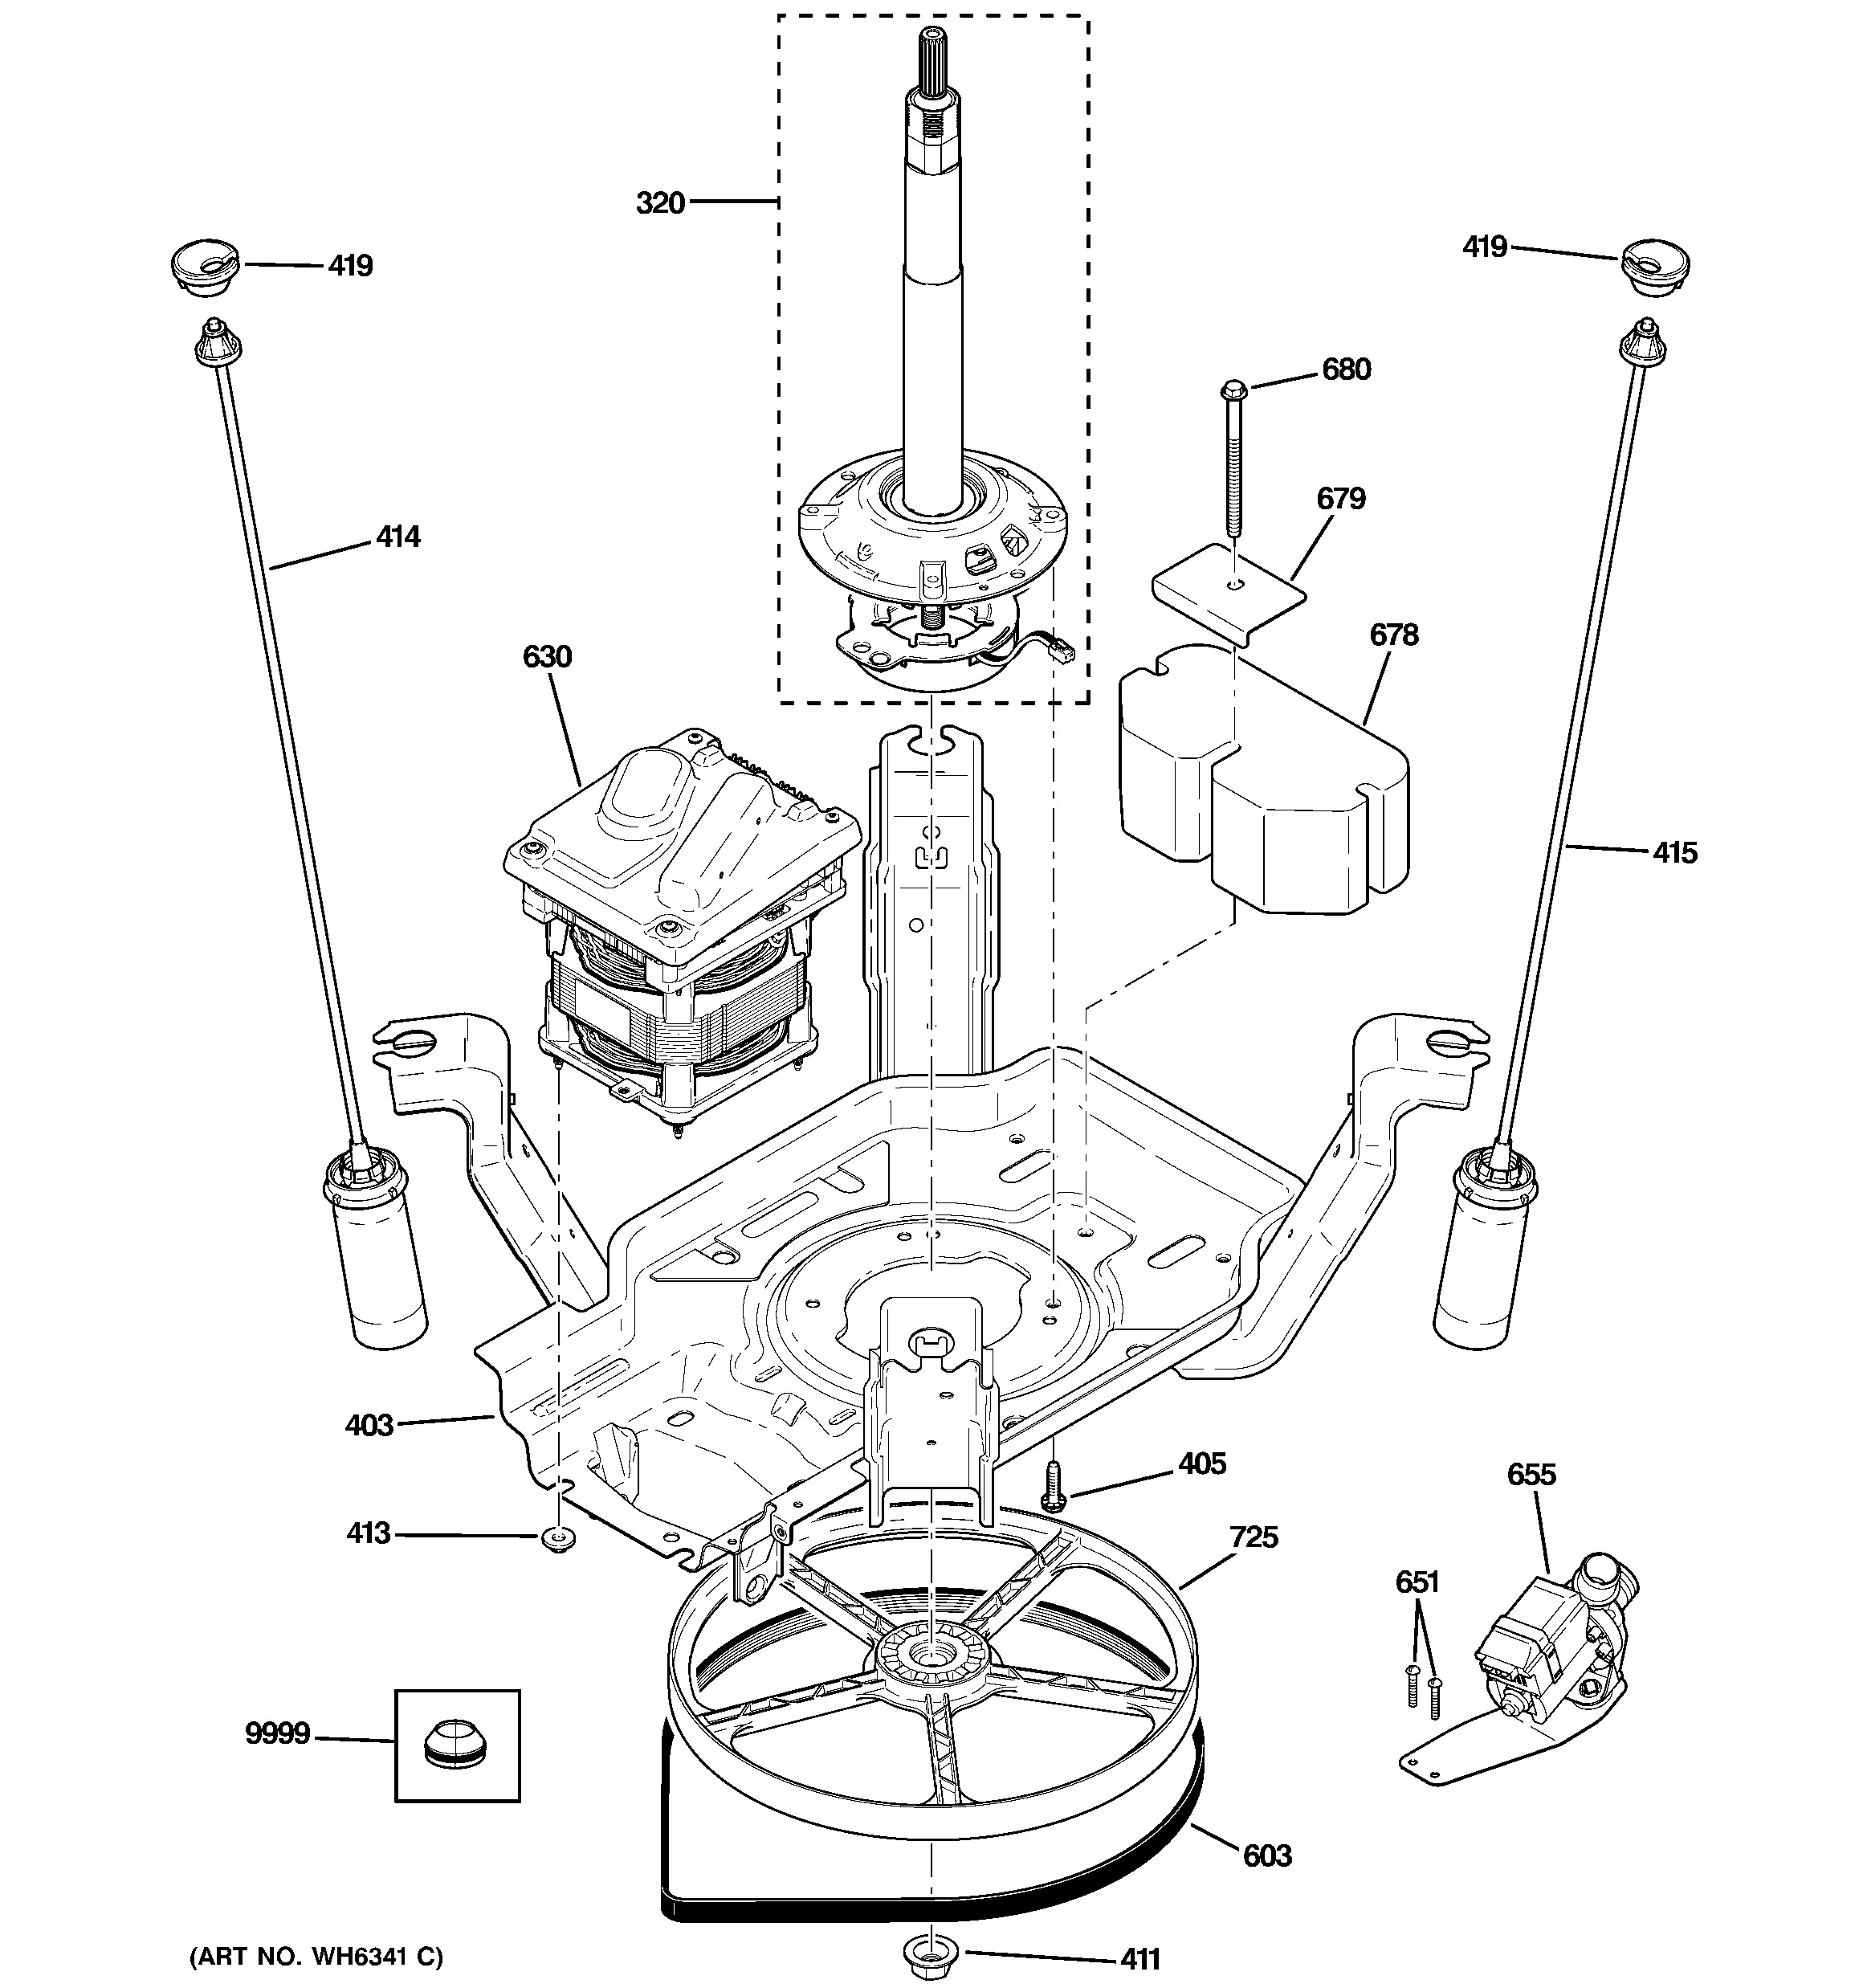 Engine Parts Diagram Ge Washer Parts Model Wmcd2050g0wc Of Engine Parts  Diagram Bmw X5 Engine Parts